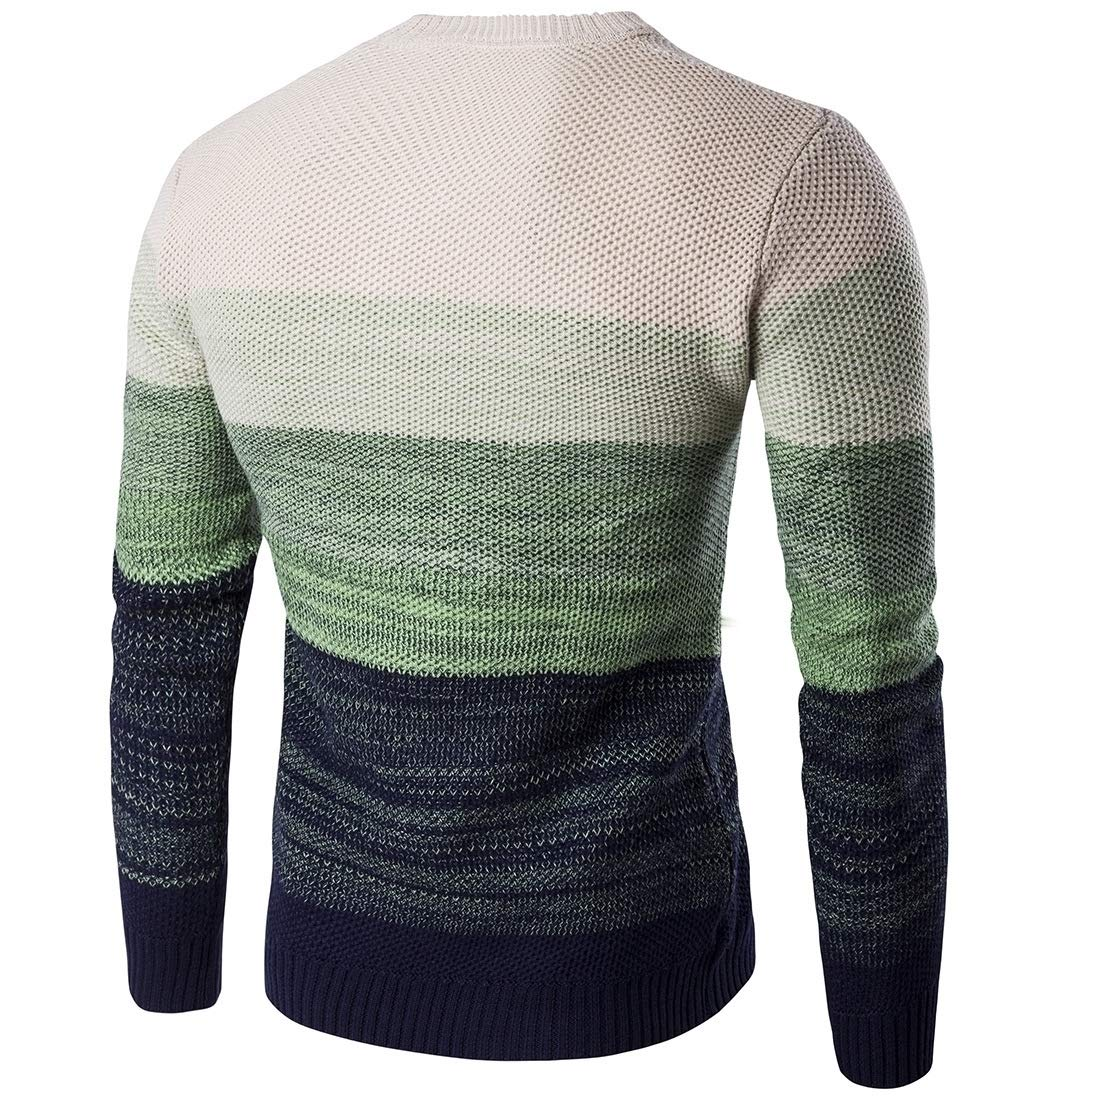 Sankt Men Spell Color Striped Relaxed-Fit Classic Pullover Sweater Tops